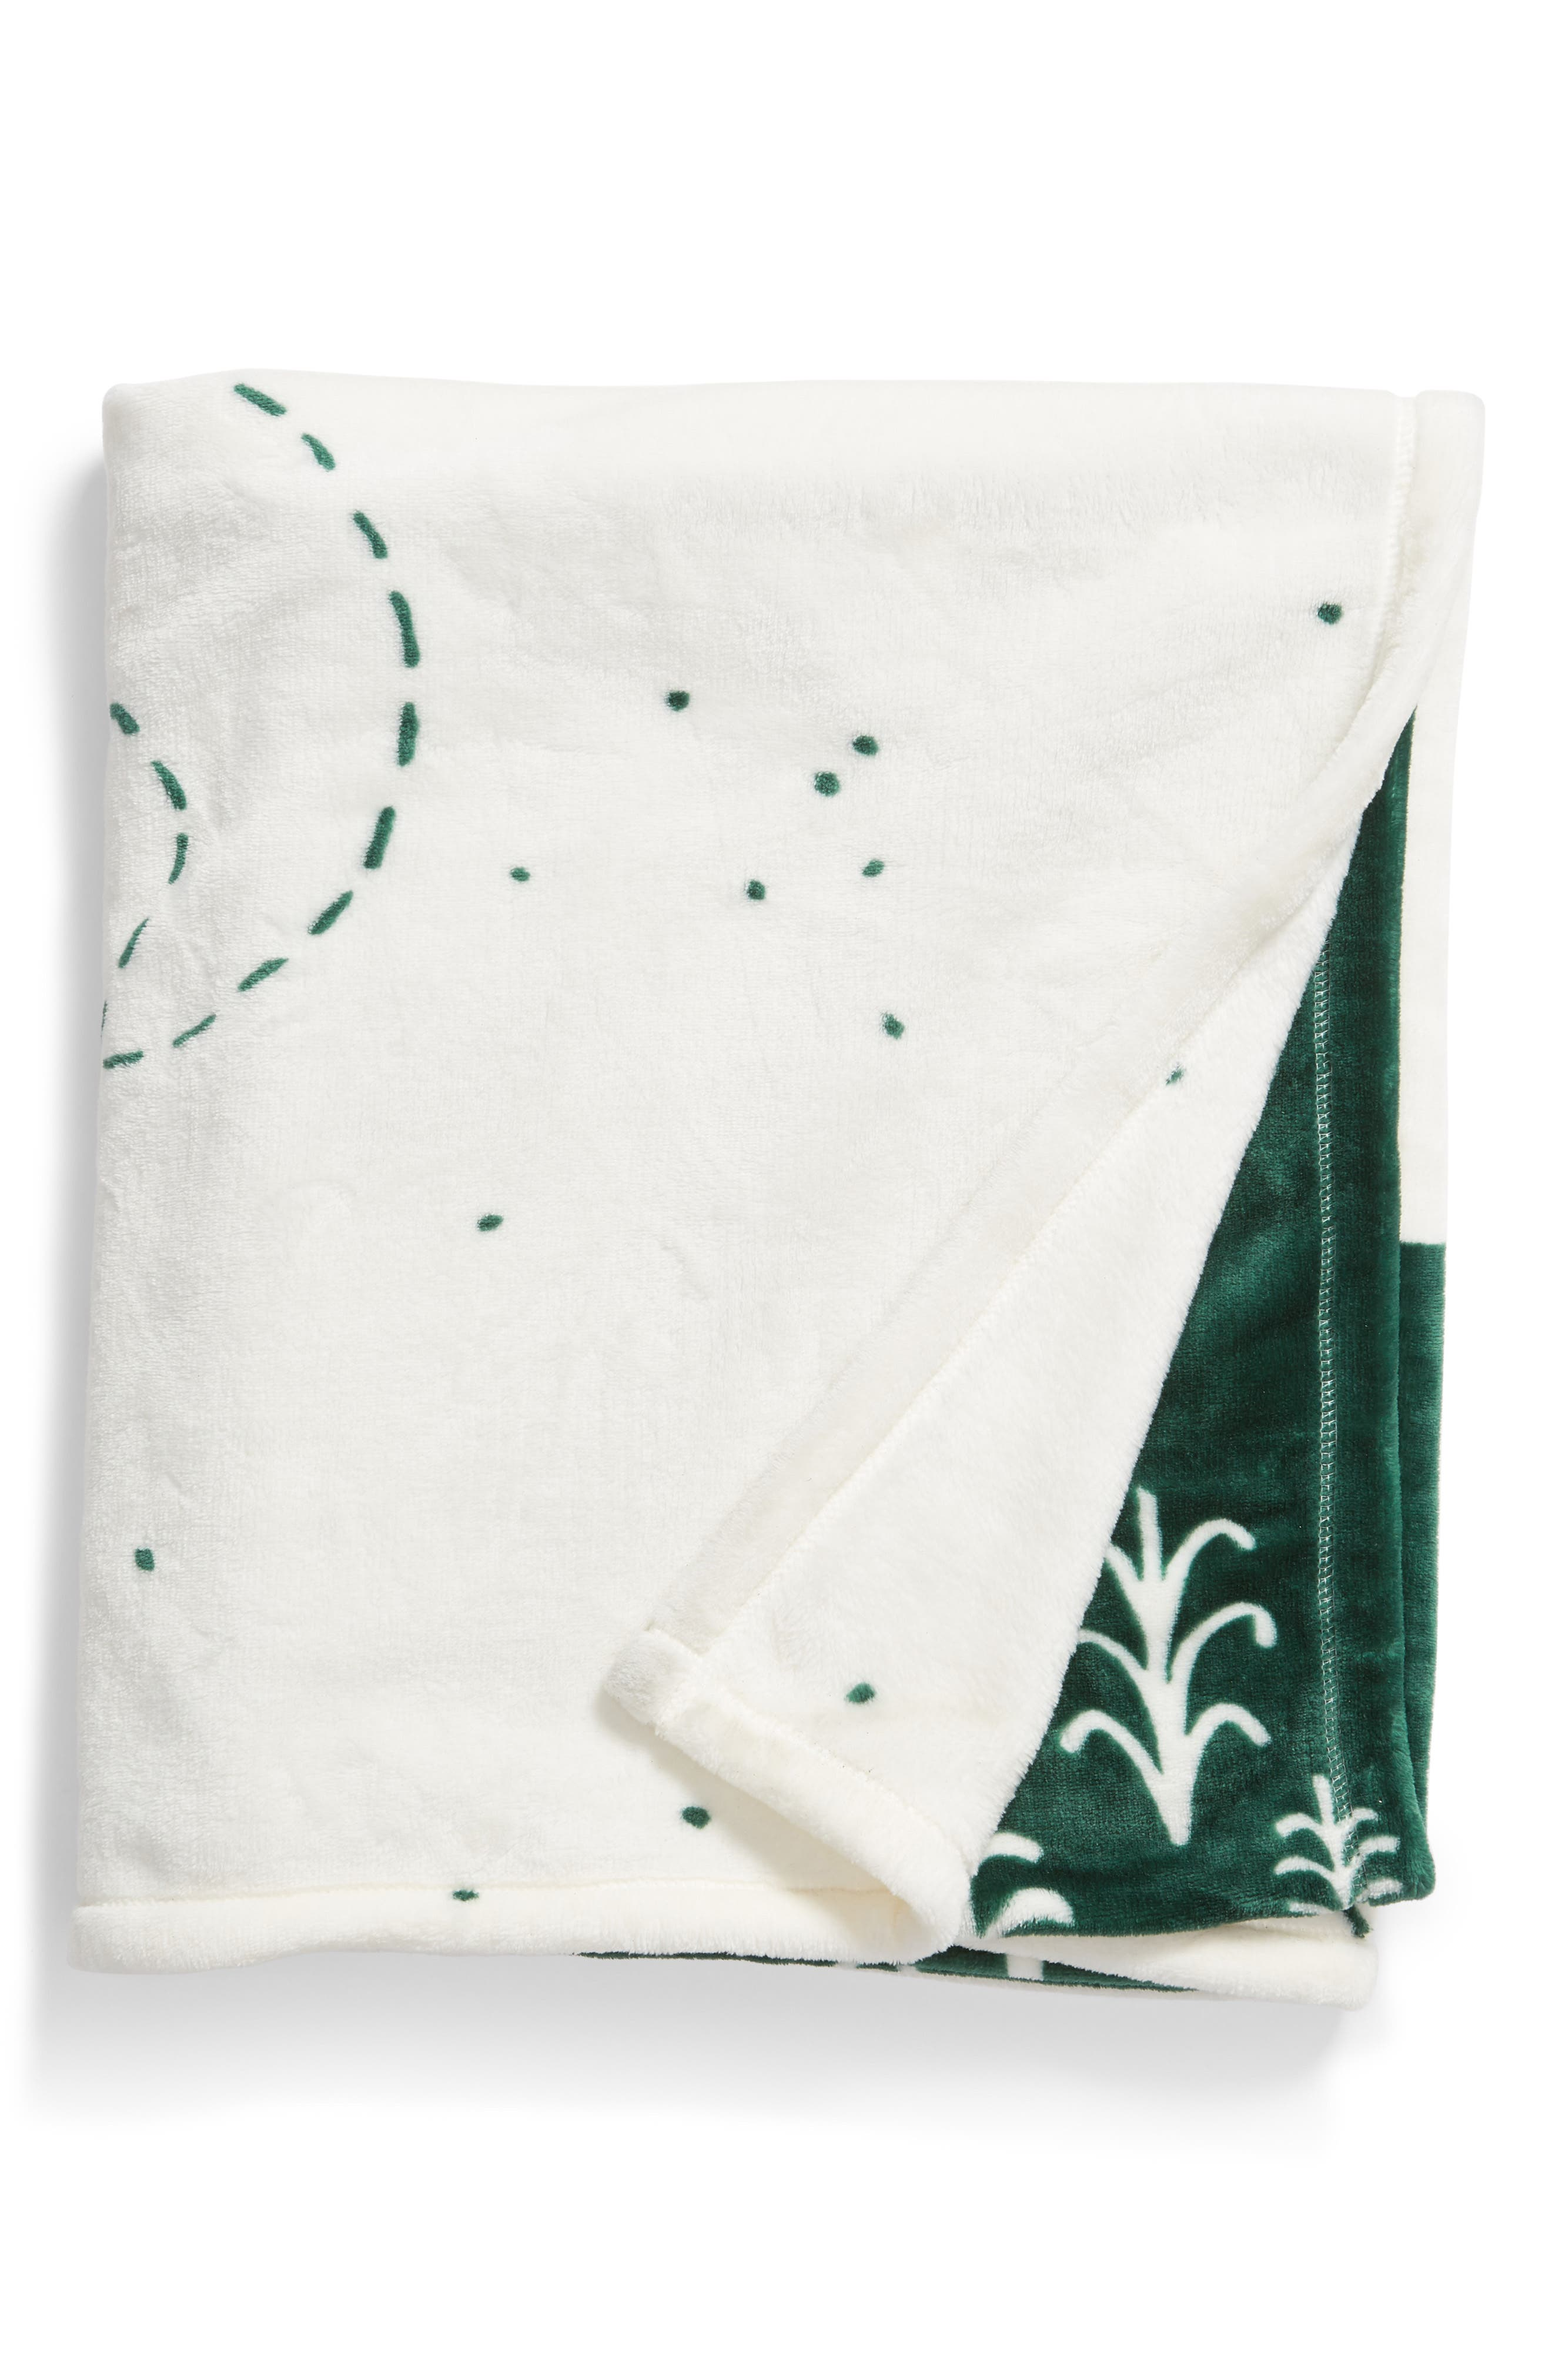 Midnight Forest Plush Throw,                             Main thumbnail 1, color,                             GREEN DARK FOREST